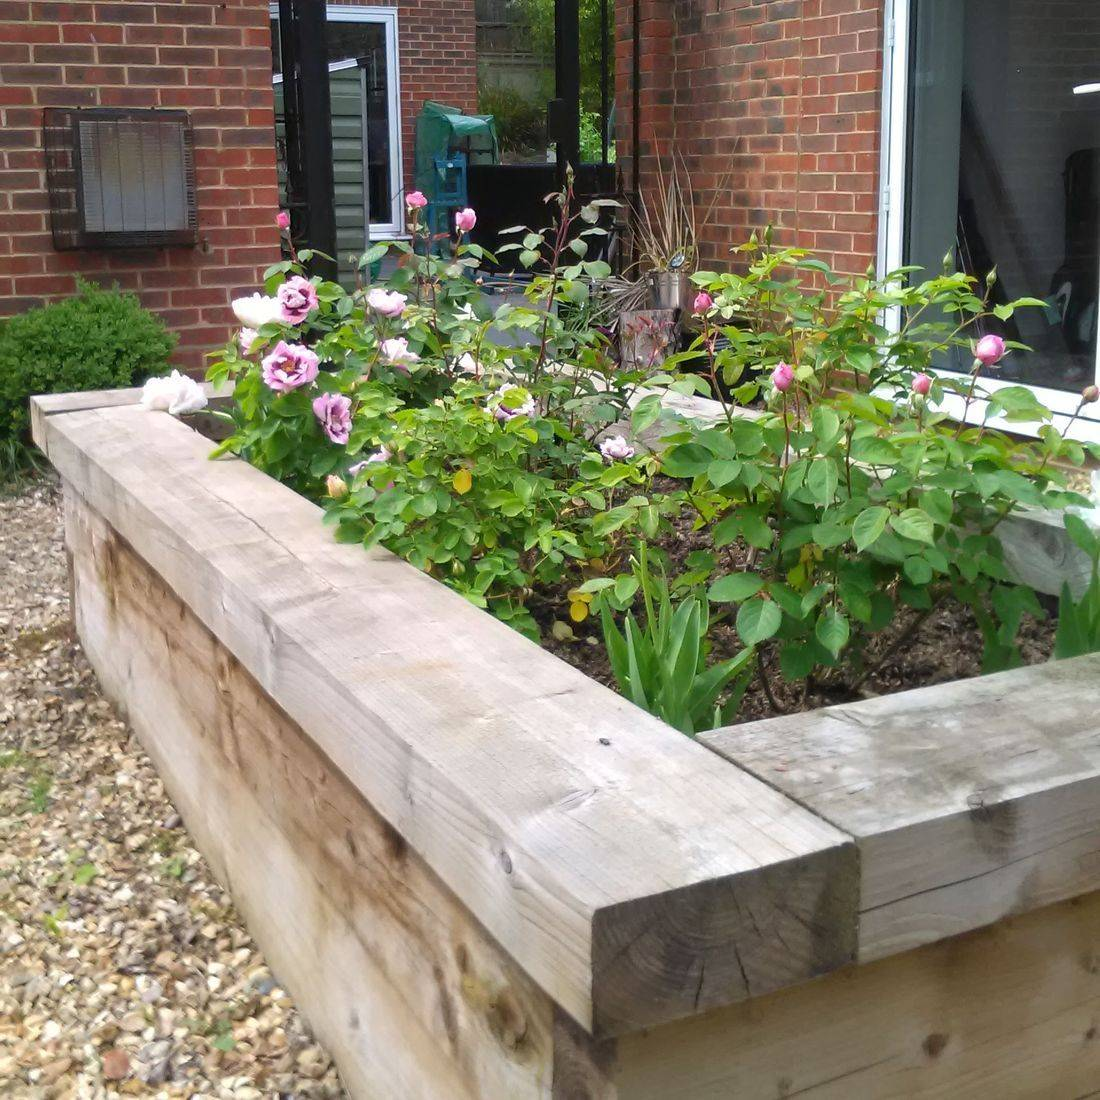 Spring flowers Hampshire gardening roses raised bed